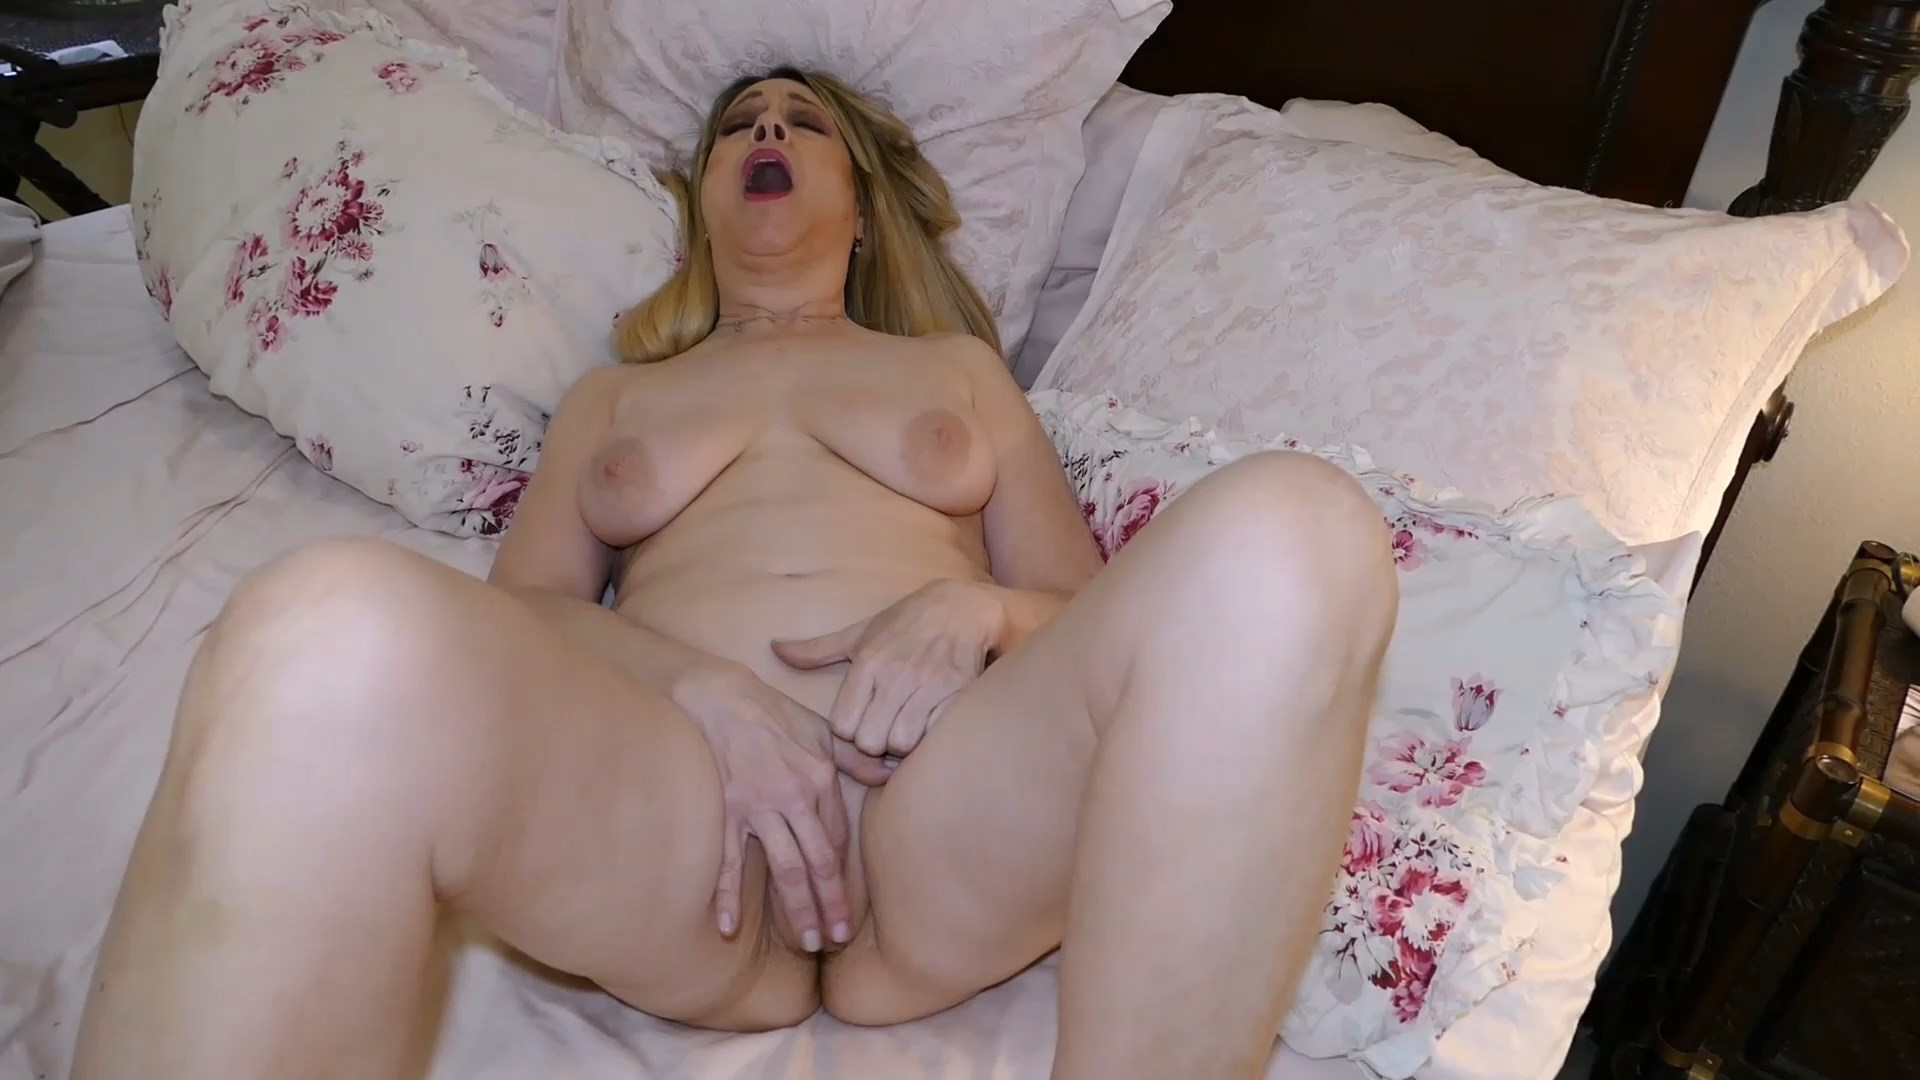 Nudist Hottie - Son Wakes Mommy, Massages All Her Body